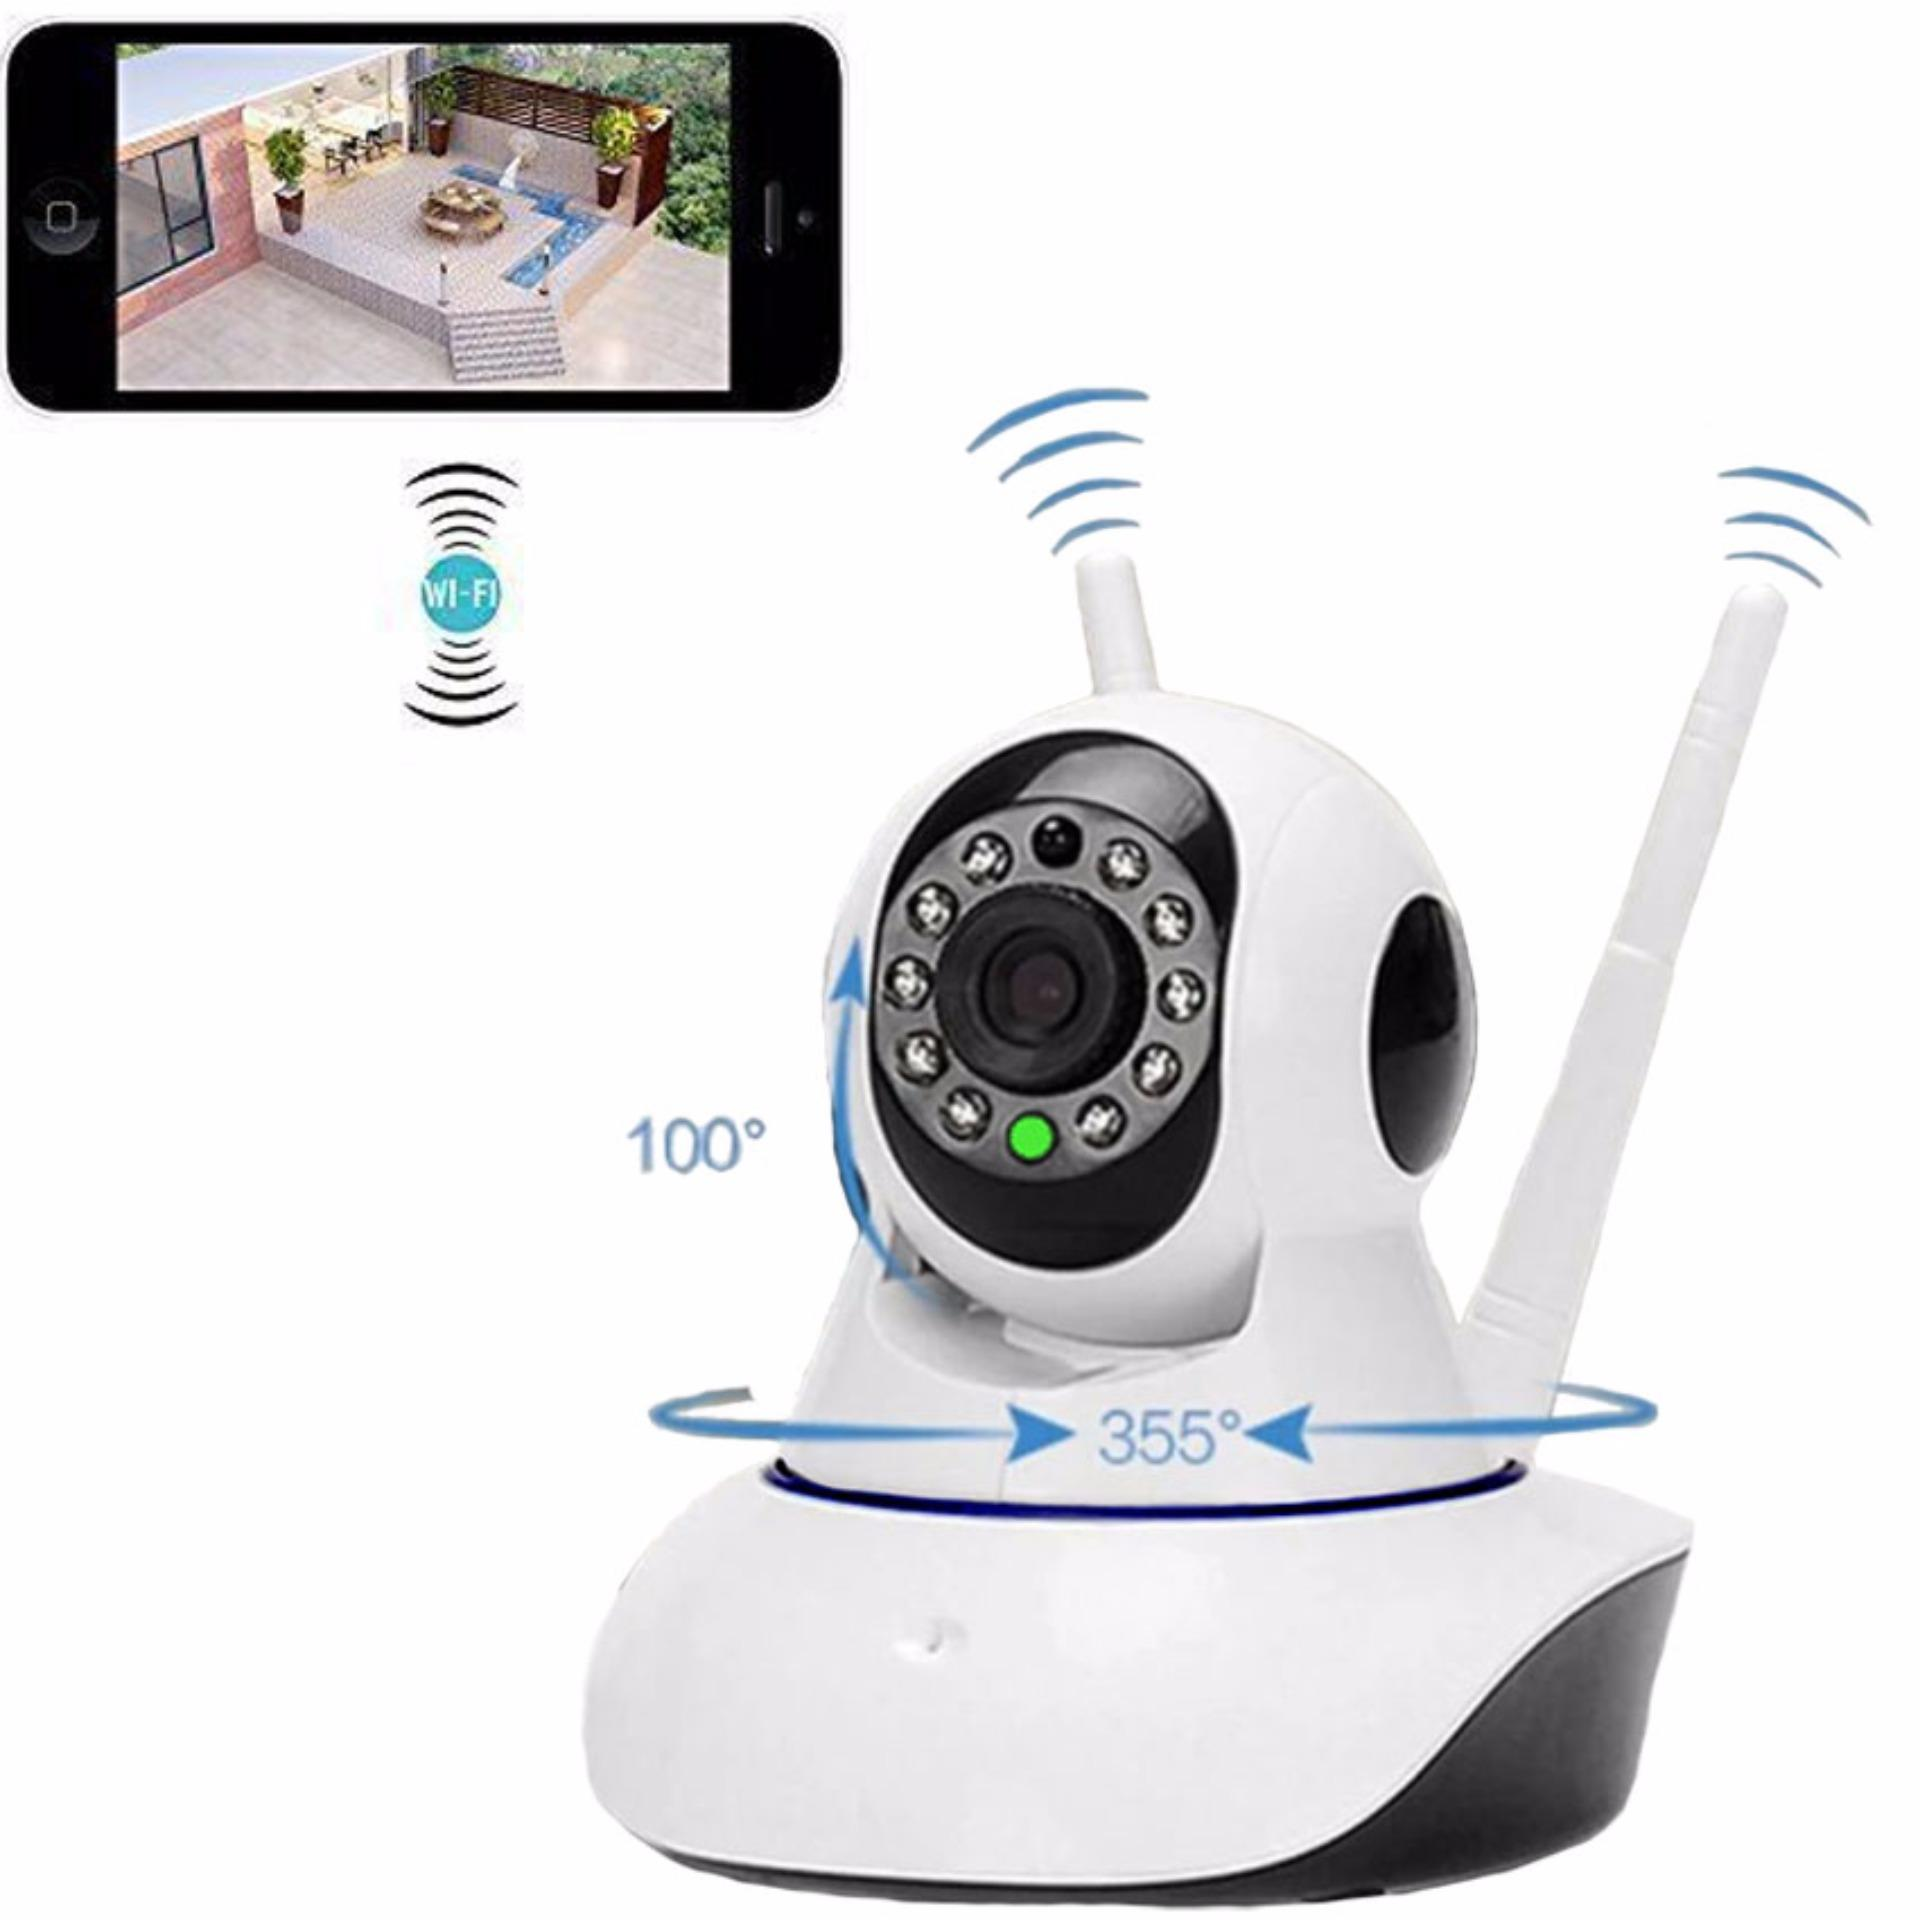 WNC-01 IP CCTV Wireless Network Camera WIFI Home Monitor Camera with Smartphone Alerts and